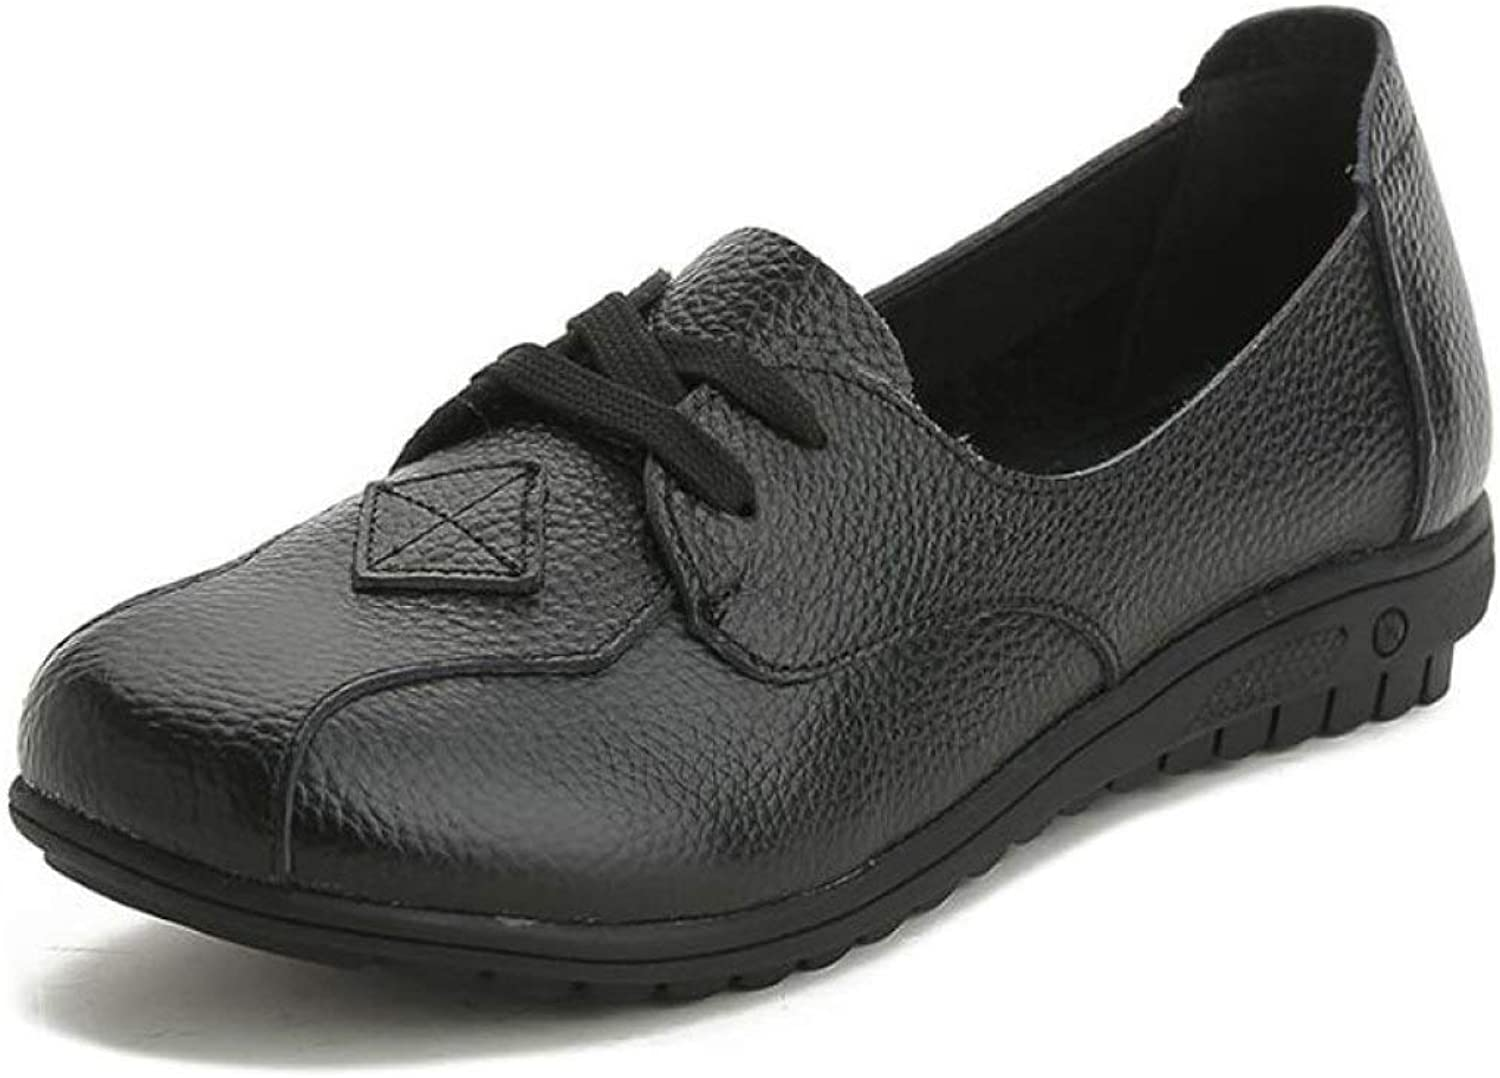 Fay Waters Women's Leather Casual Flat Moccasins Oxfords Lace Up Round Toe Comfort Driving shoes